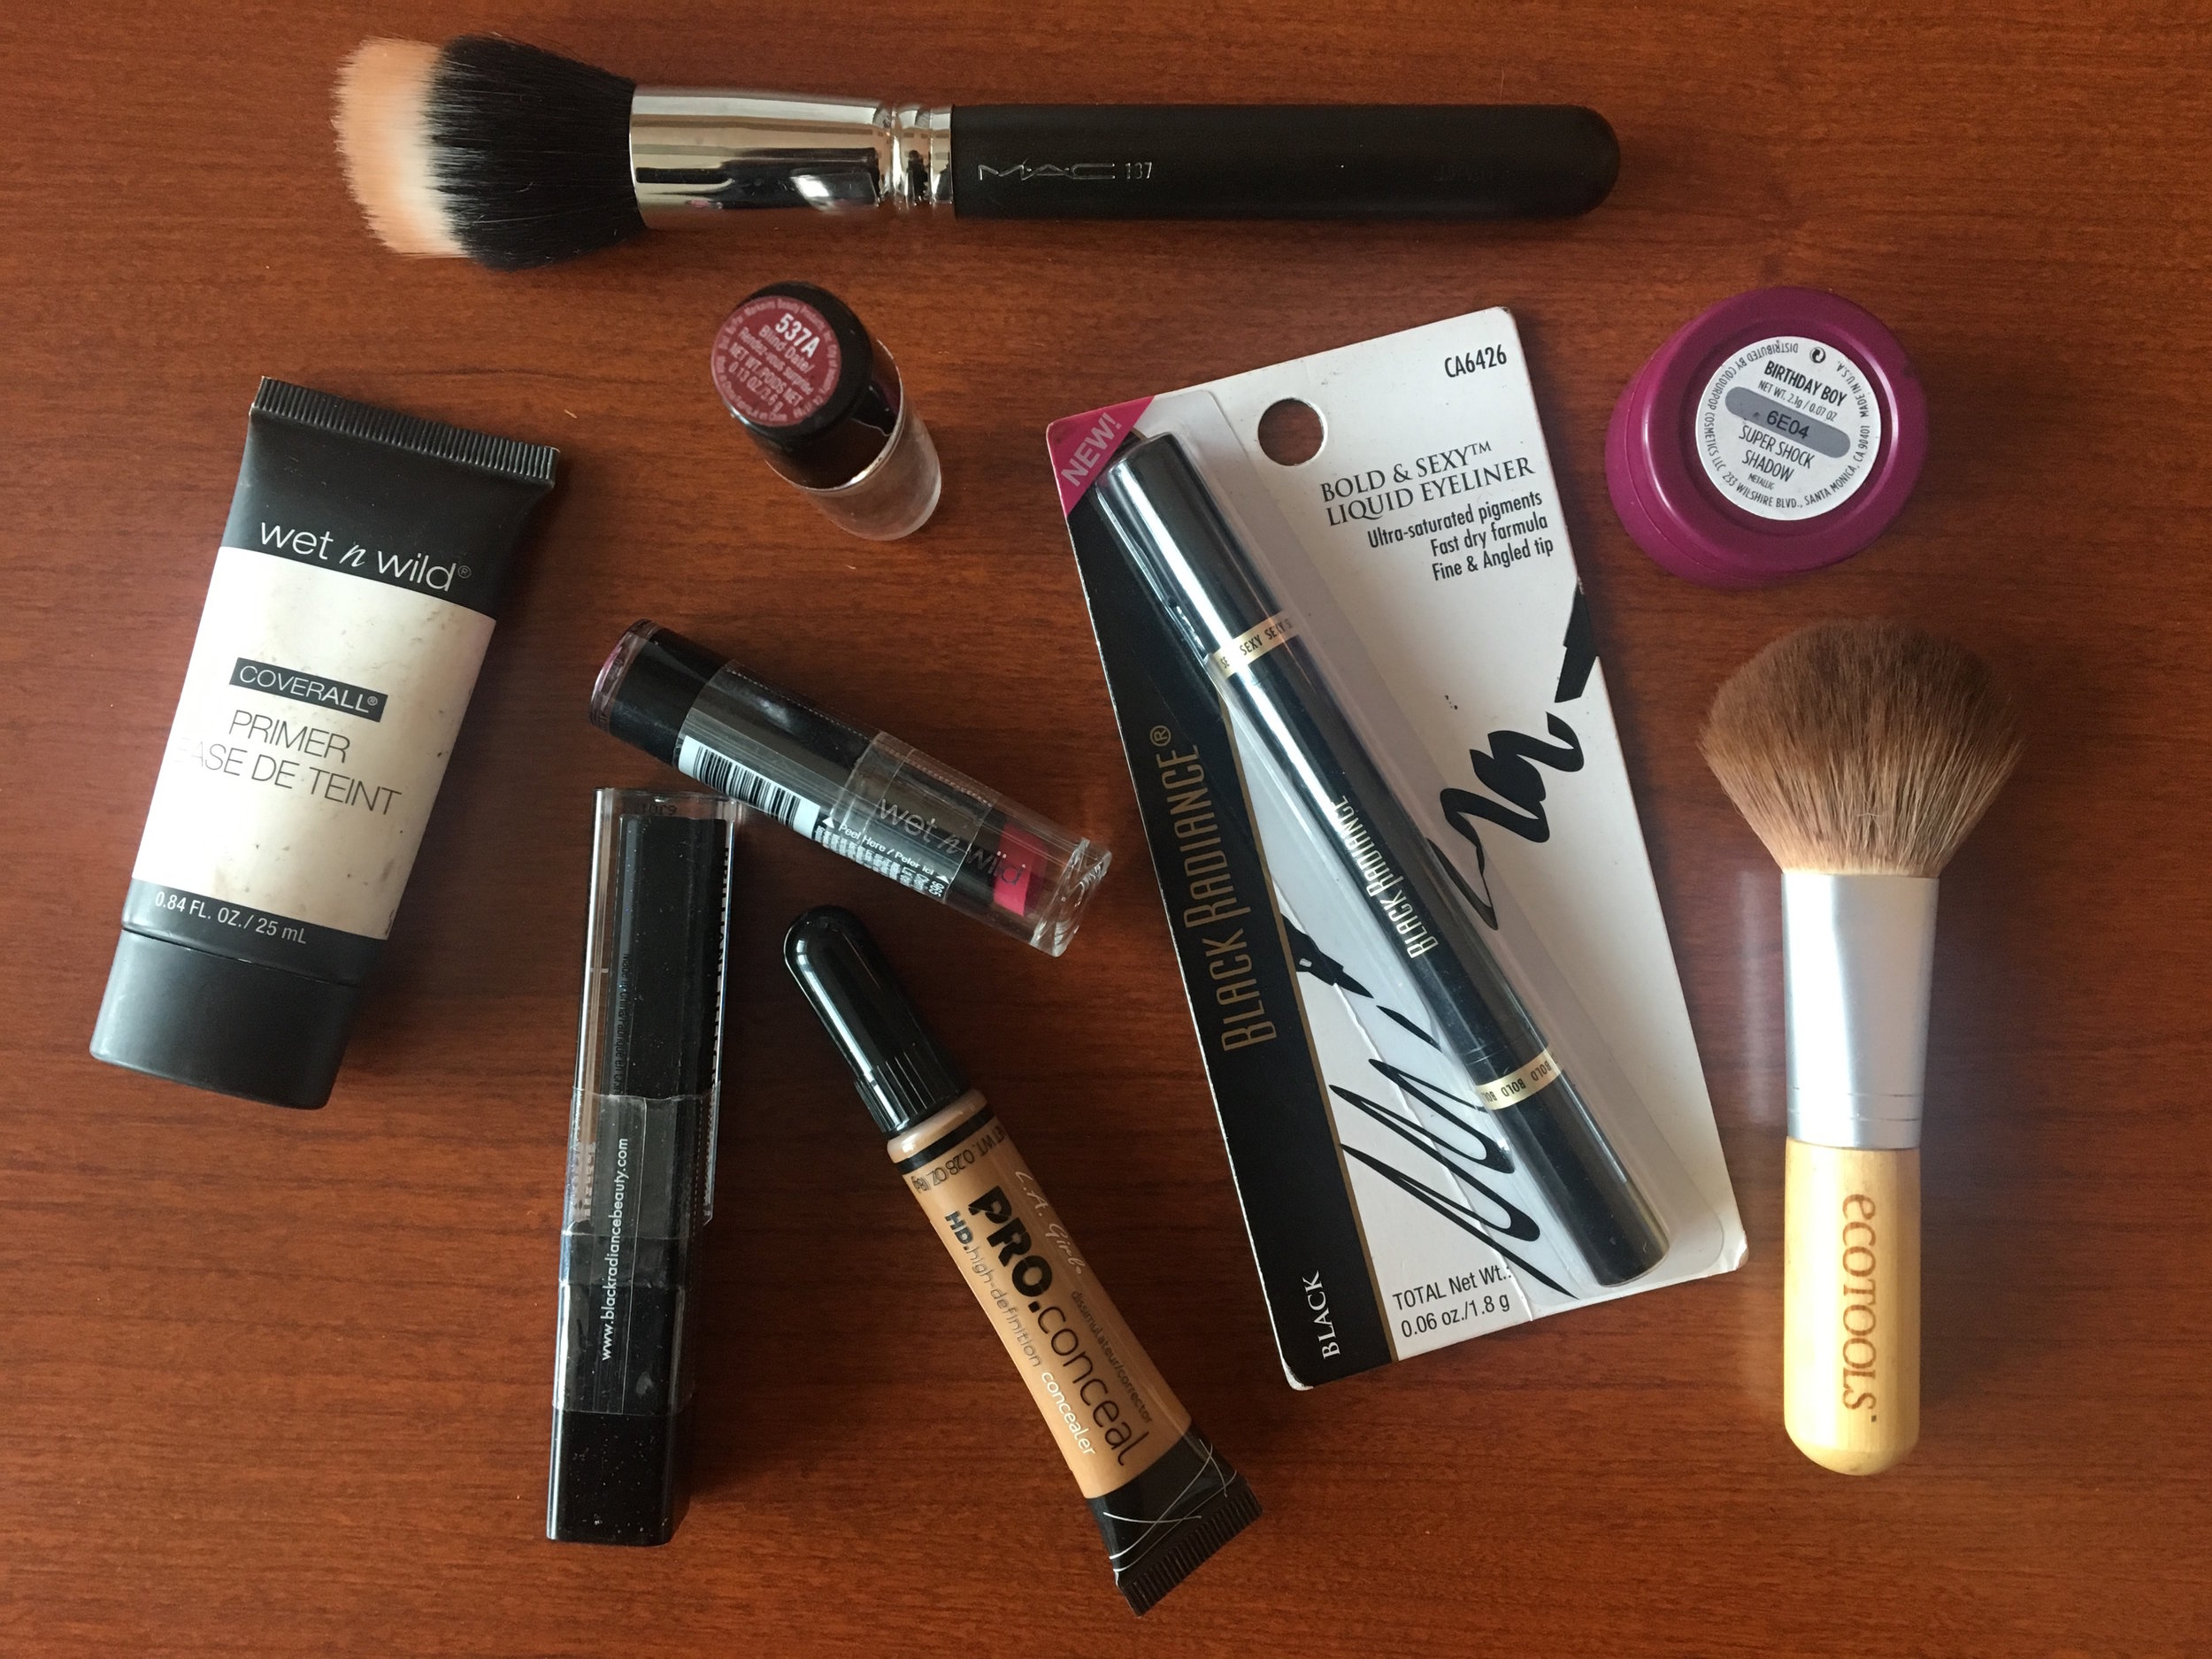 Wet n Wild primer, Black Radiance lipgloss (Black Diamond), Black Radiance liquid eyeliner (Black), Wet n Wild lipstick (Blind Date and Cherry Picking), L.A. Girl PRO Conceal concealer(Fawn), EcoTools blush brush, MAC foundation brush #187, Color Pop eyeshadow (Birthday Boy).